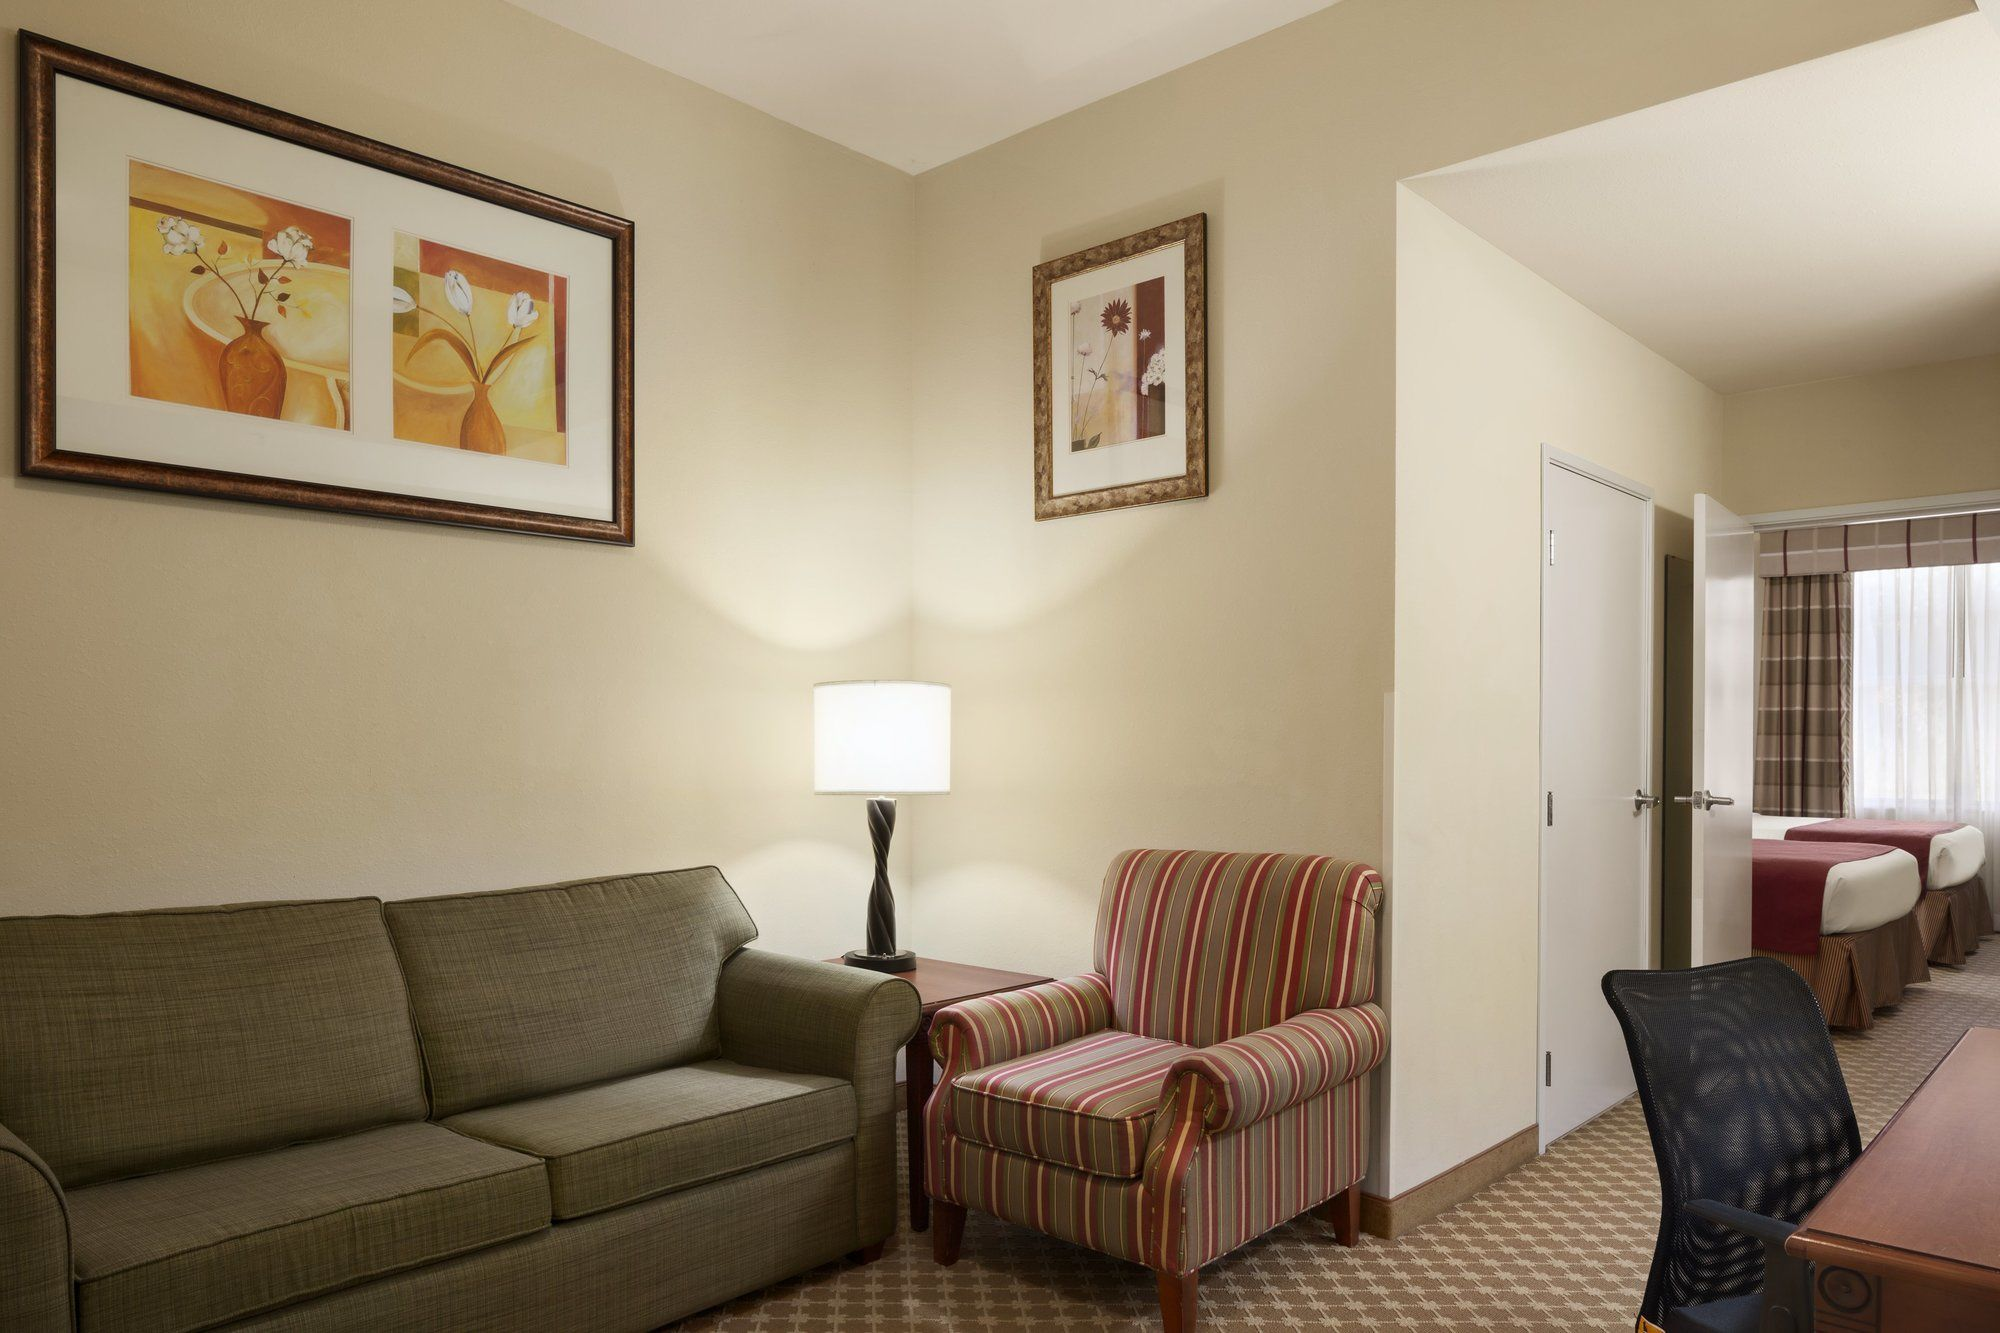 Country Inn & Suites in Crestview, FL